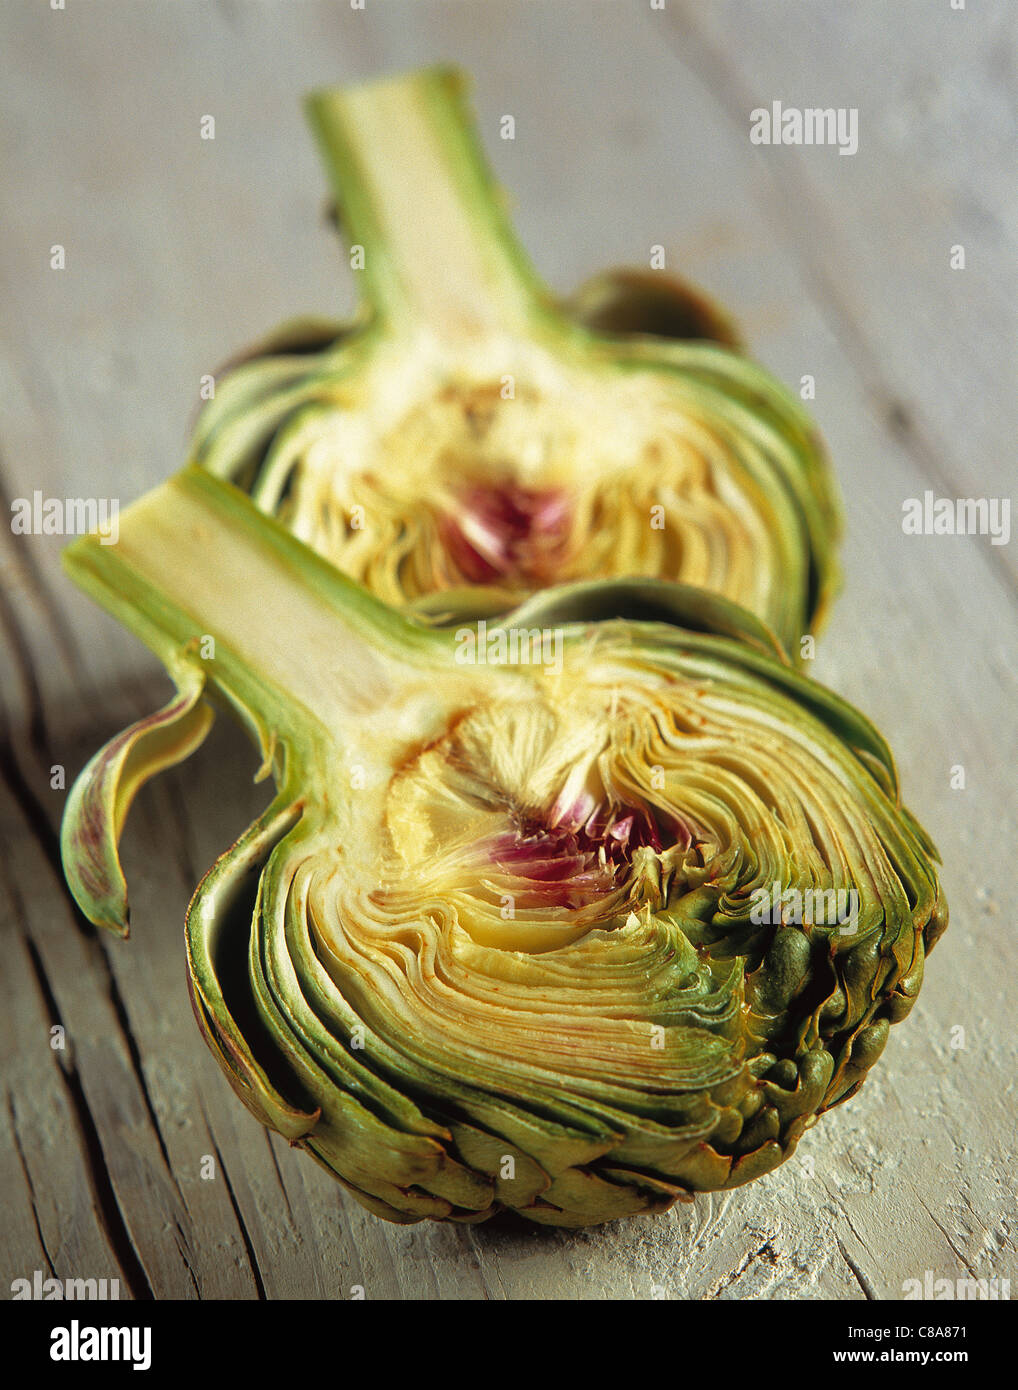 Artichoke cut in half Stock Photo